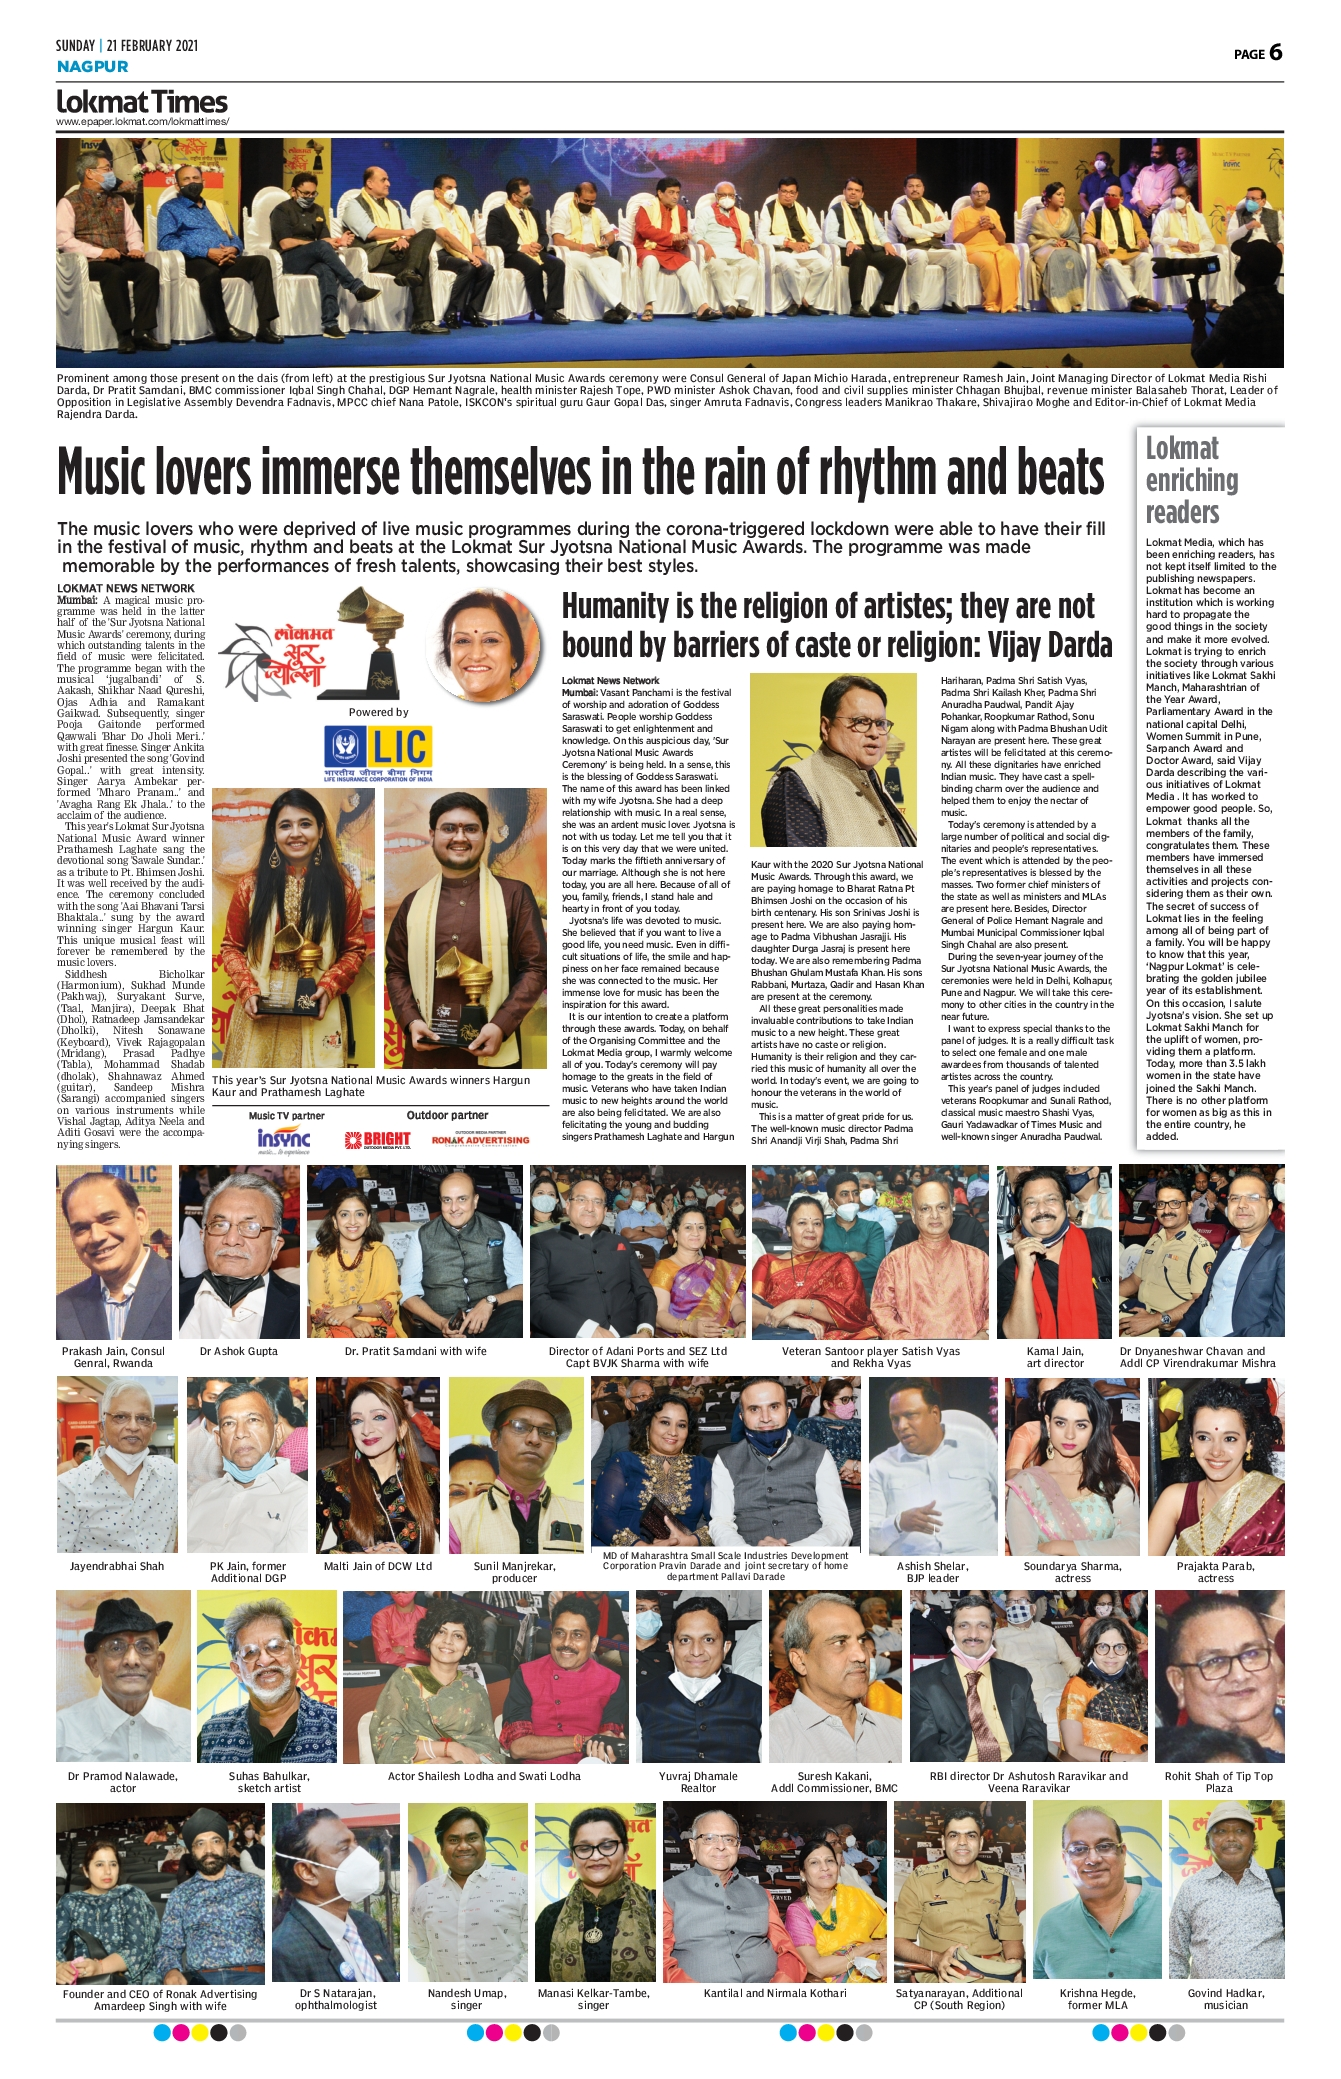 Music lovers immerse themselves in the rain of rhythm and beats